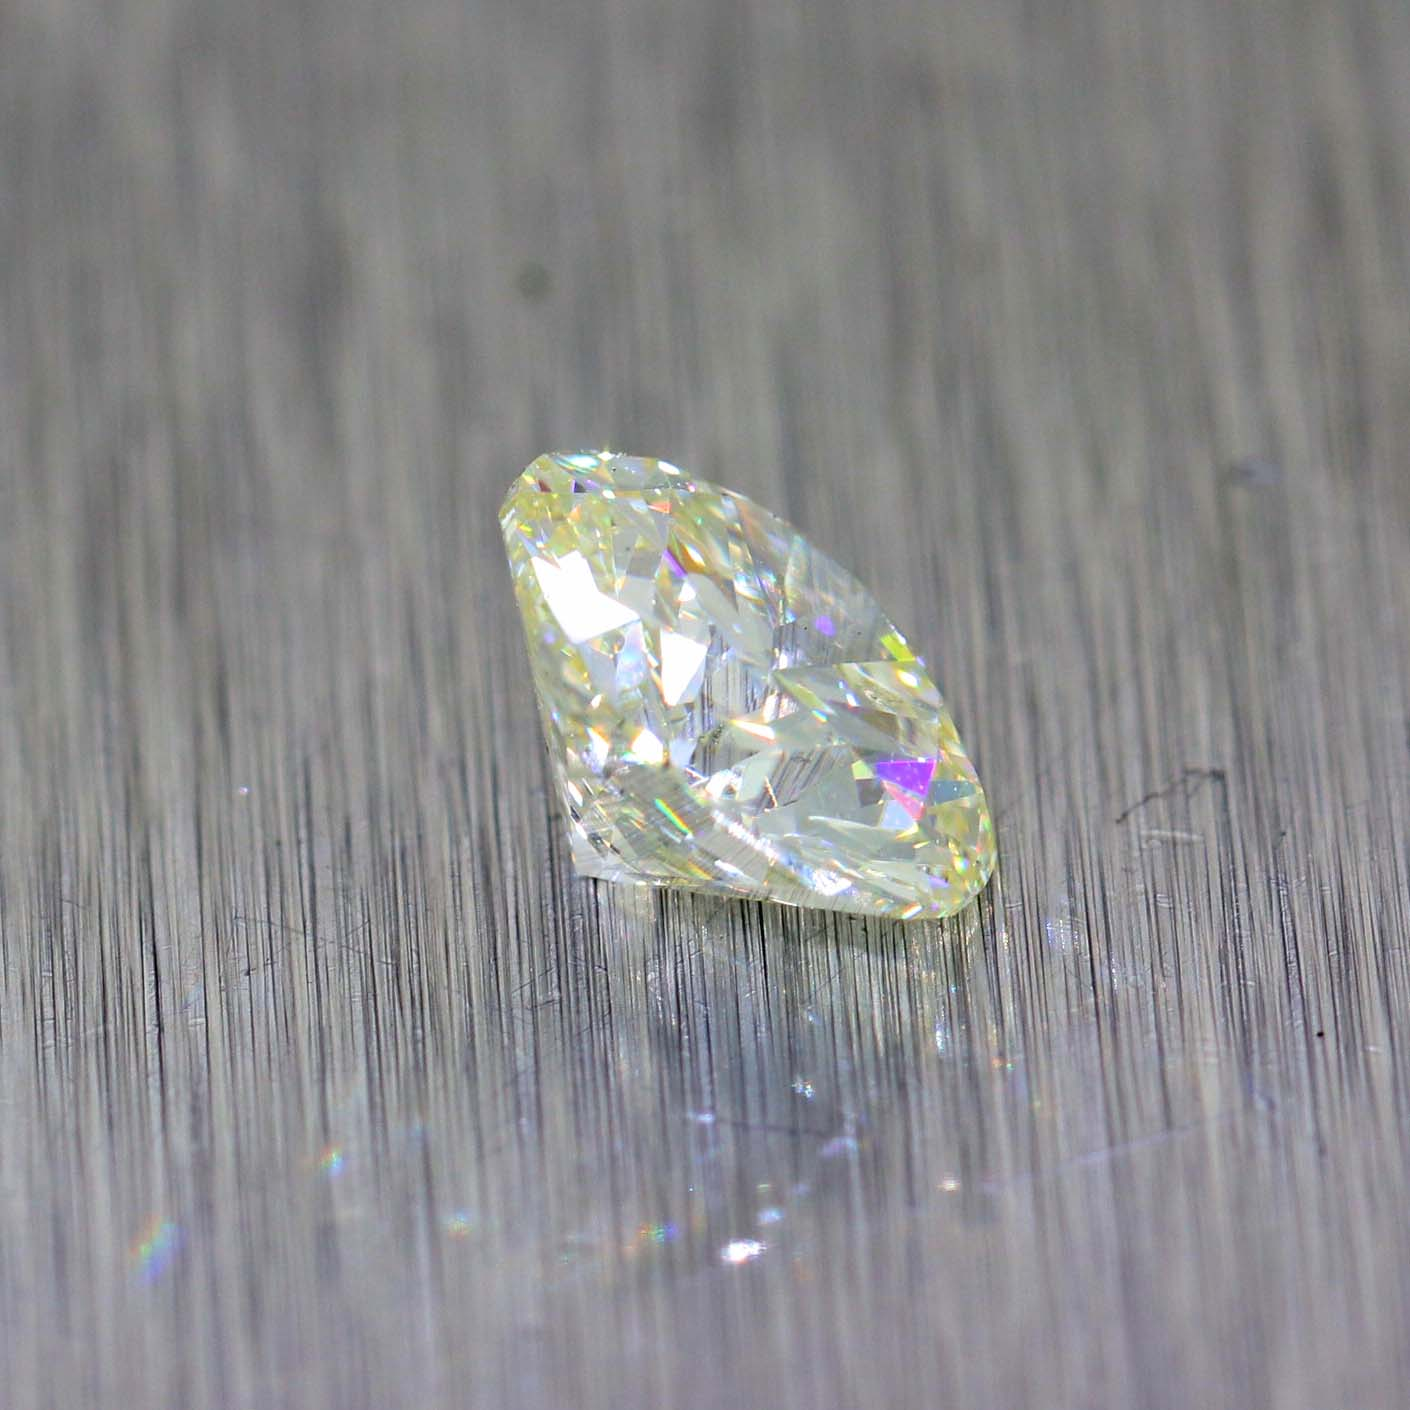 1.00ctw Round Brilliant Cut L Color VS2 Clarity GIA Loose Diamond